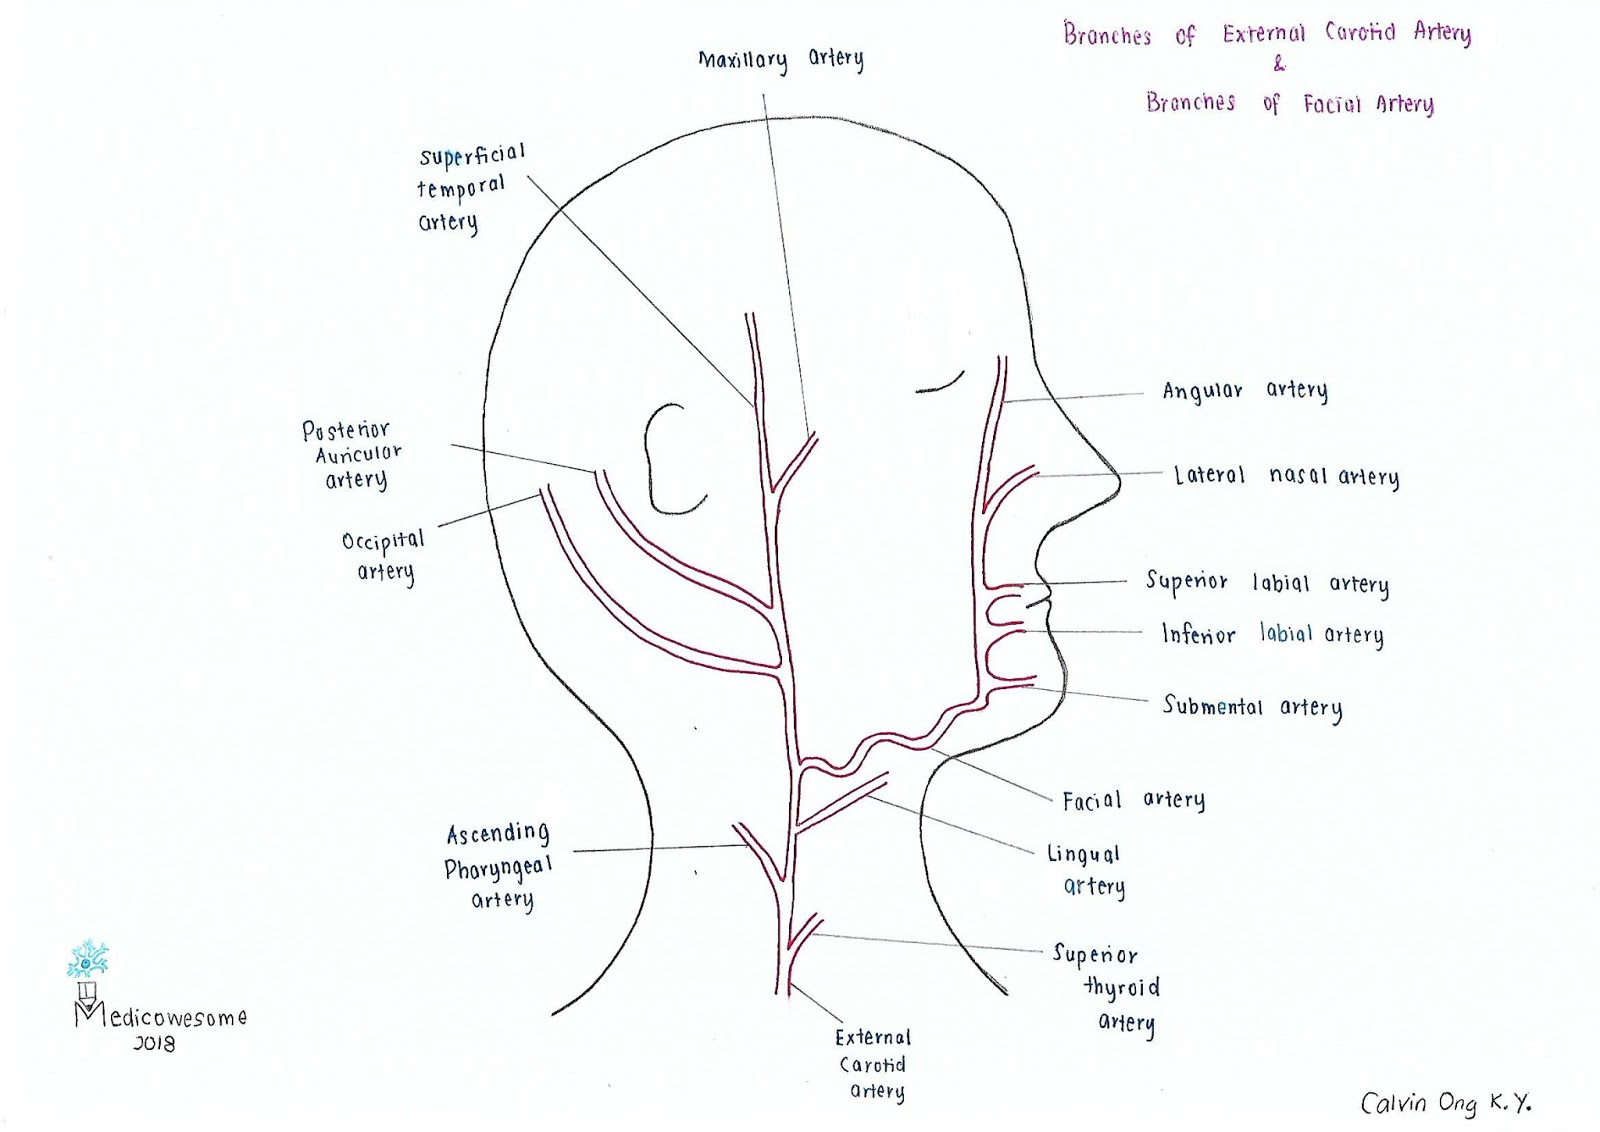 Medicowesome Arterial Supply Of The Head Amp Neck In A